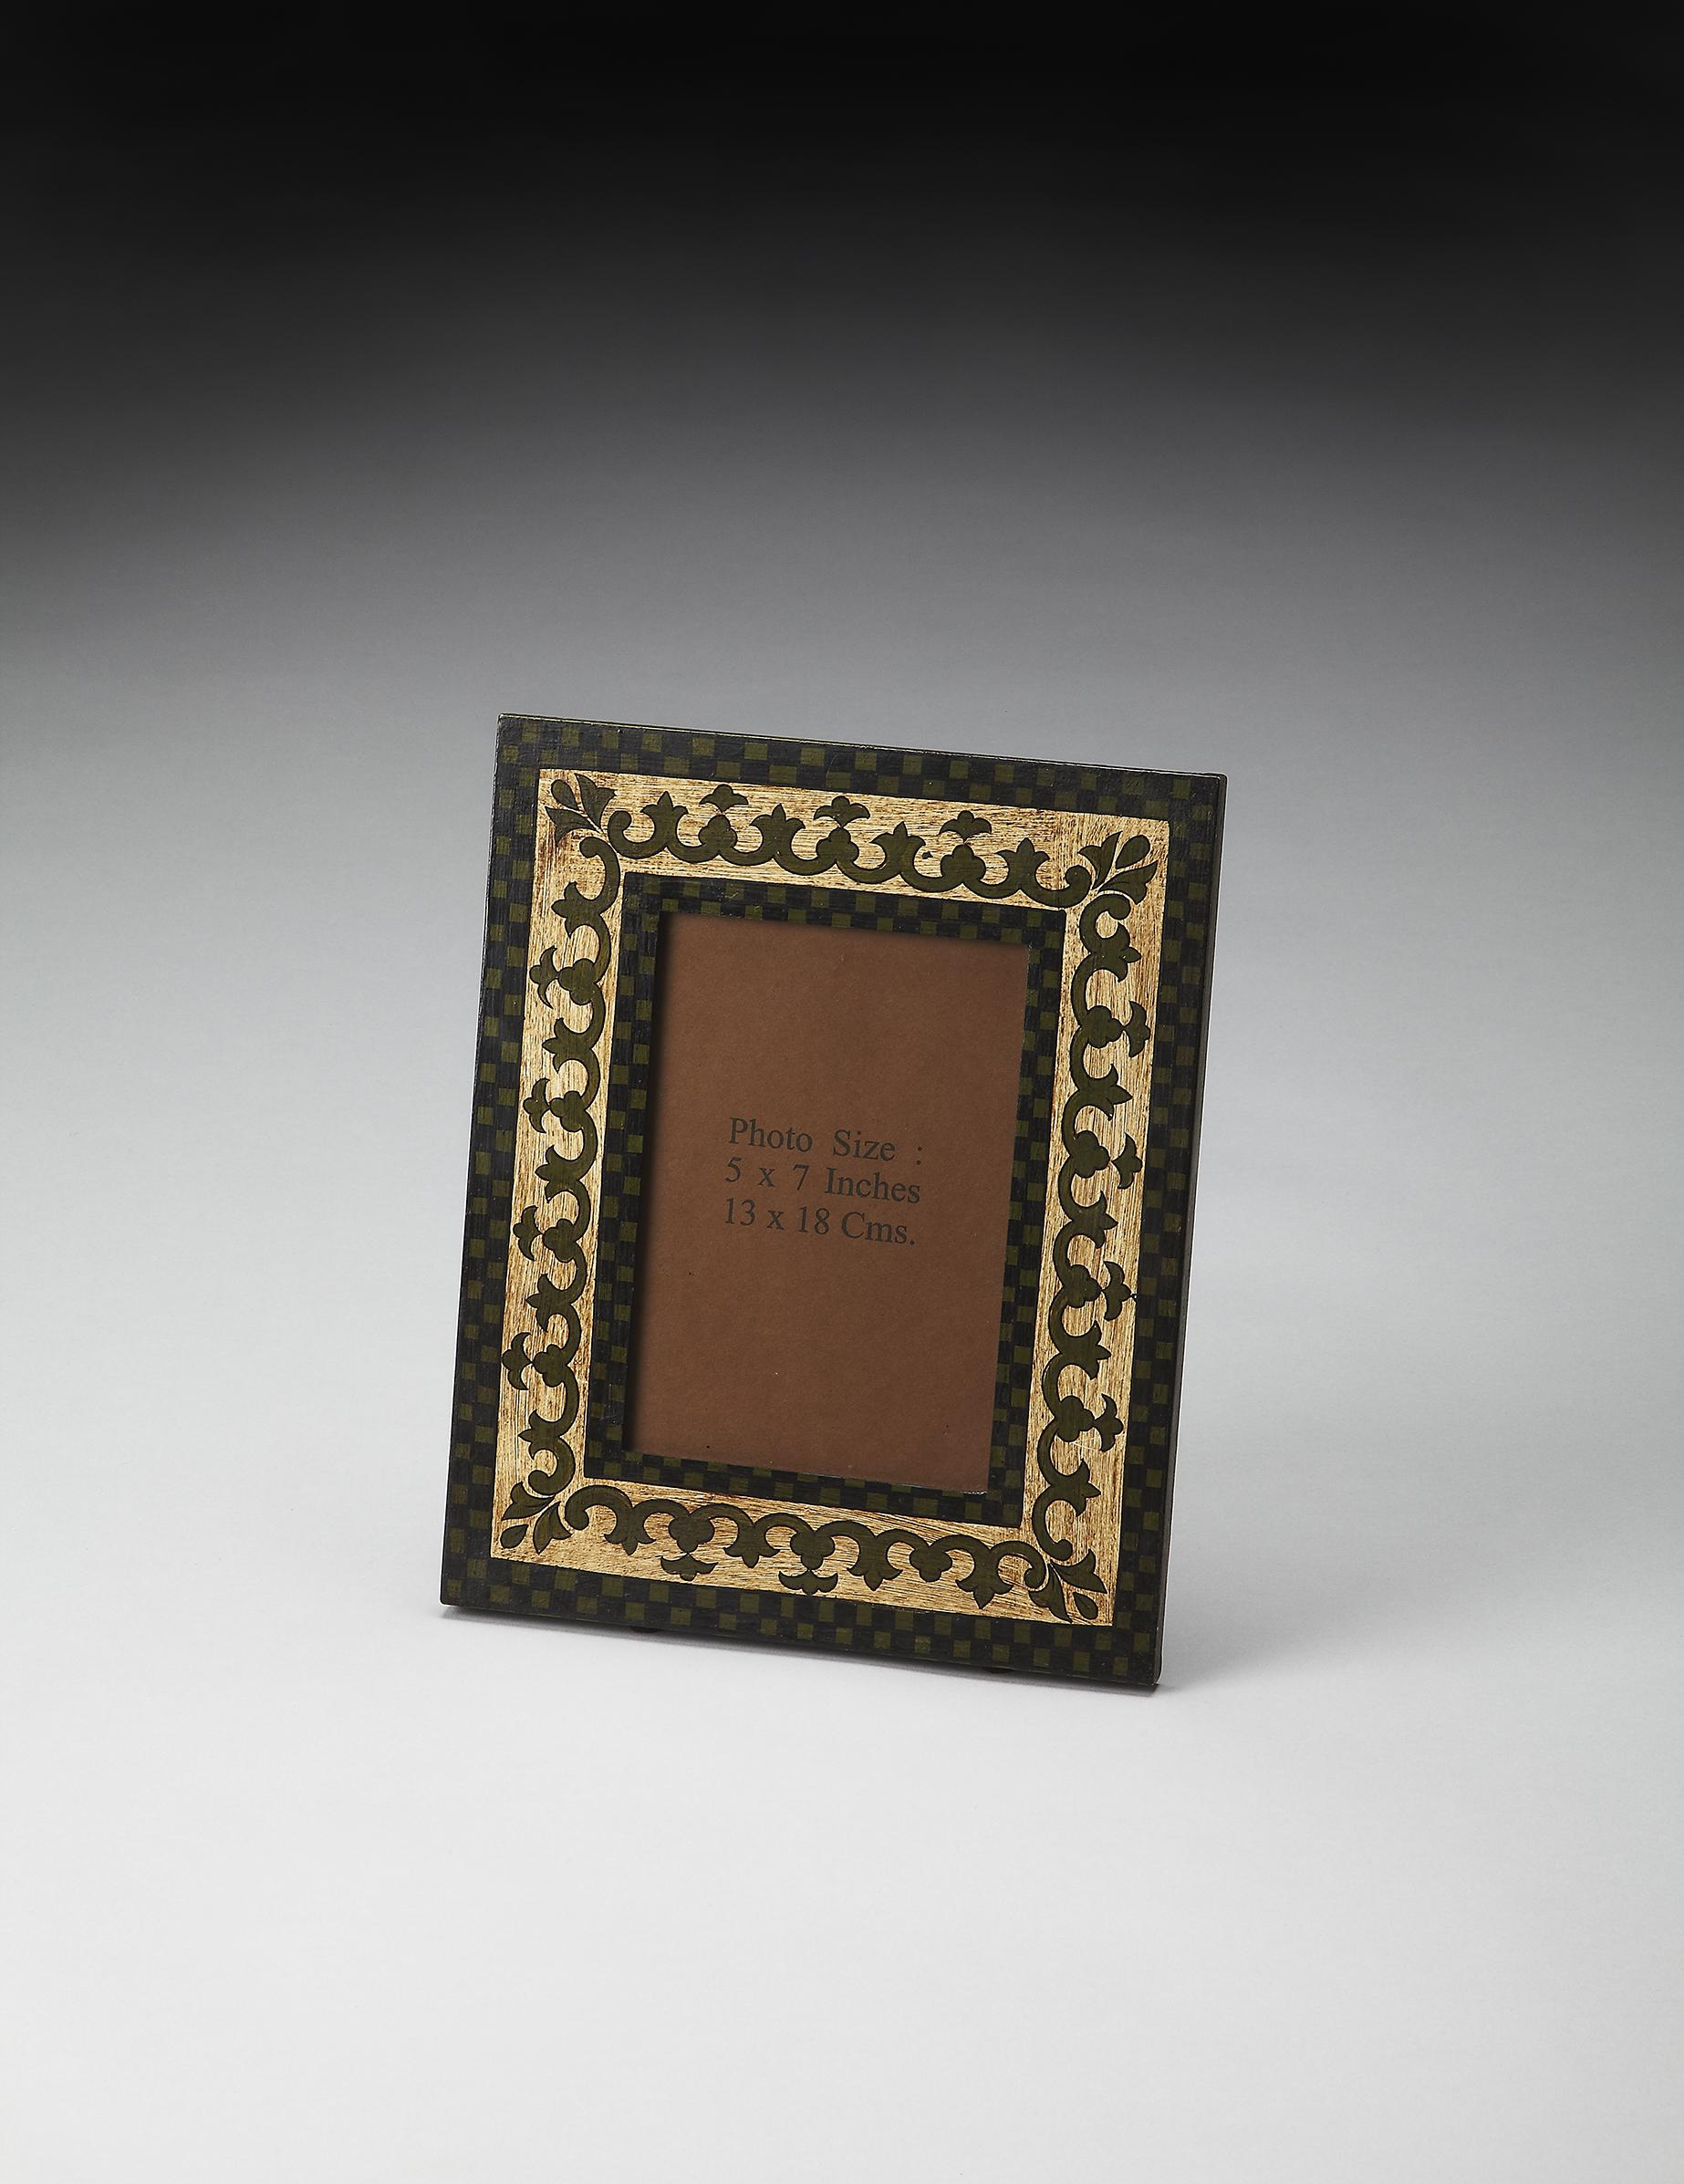 Butler Specialty Company Hors D'oeuvres 4x6 Picture Frame - Item Number: 3478016